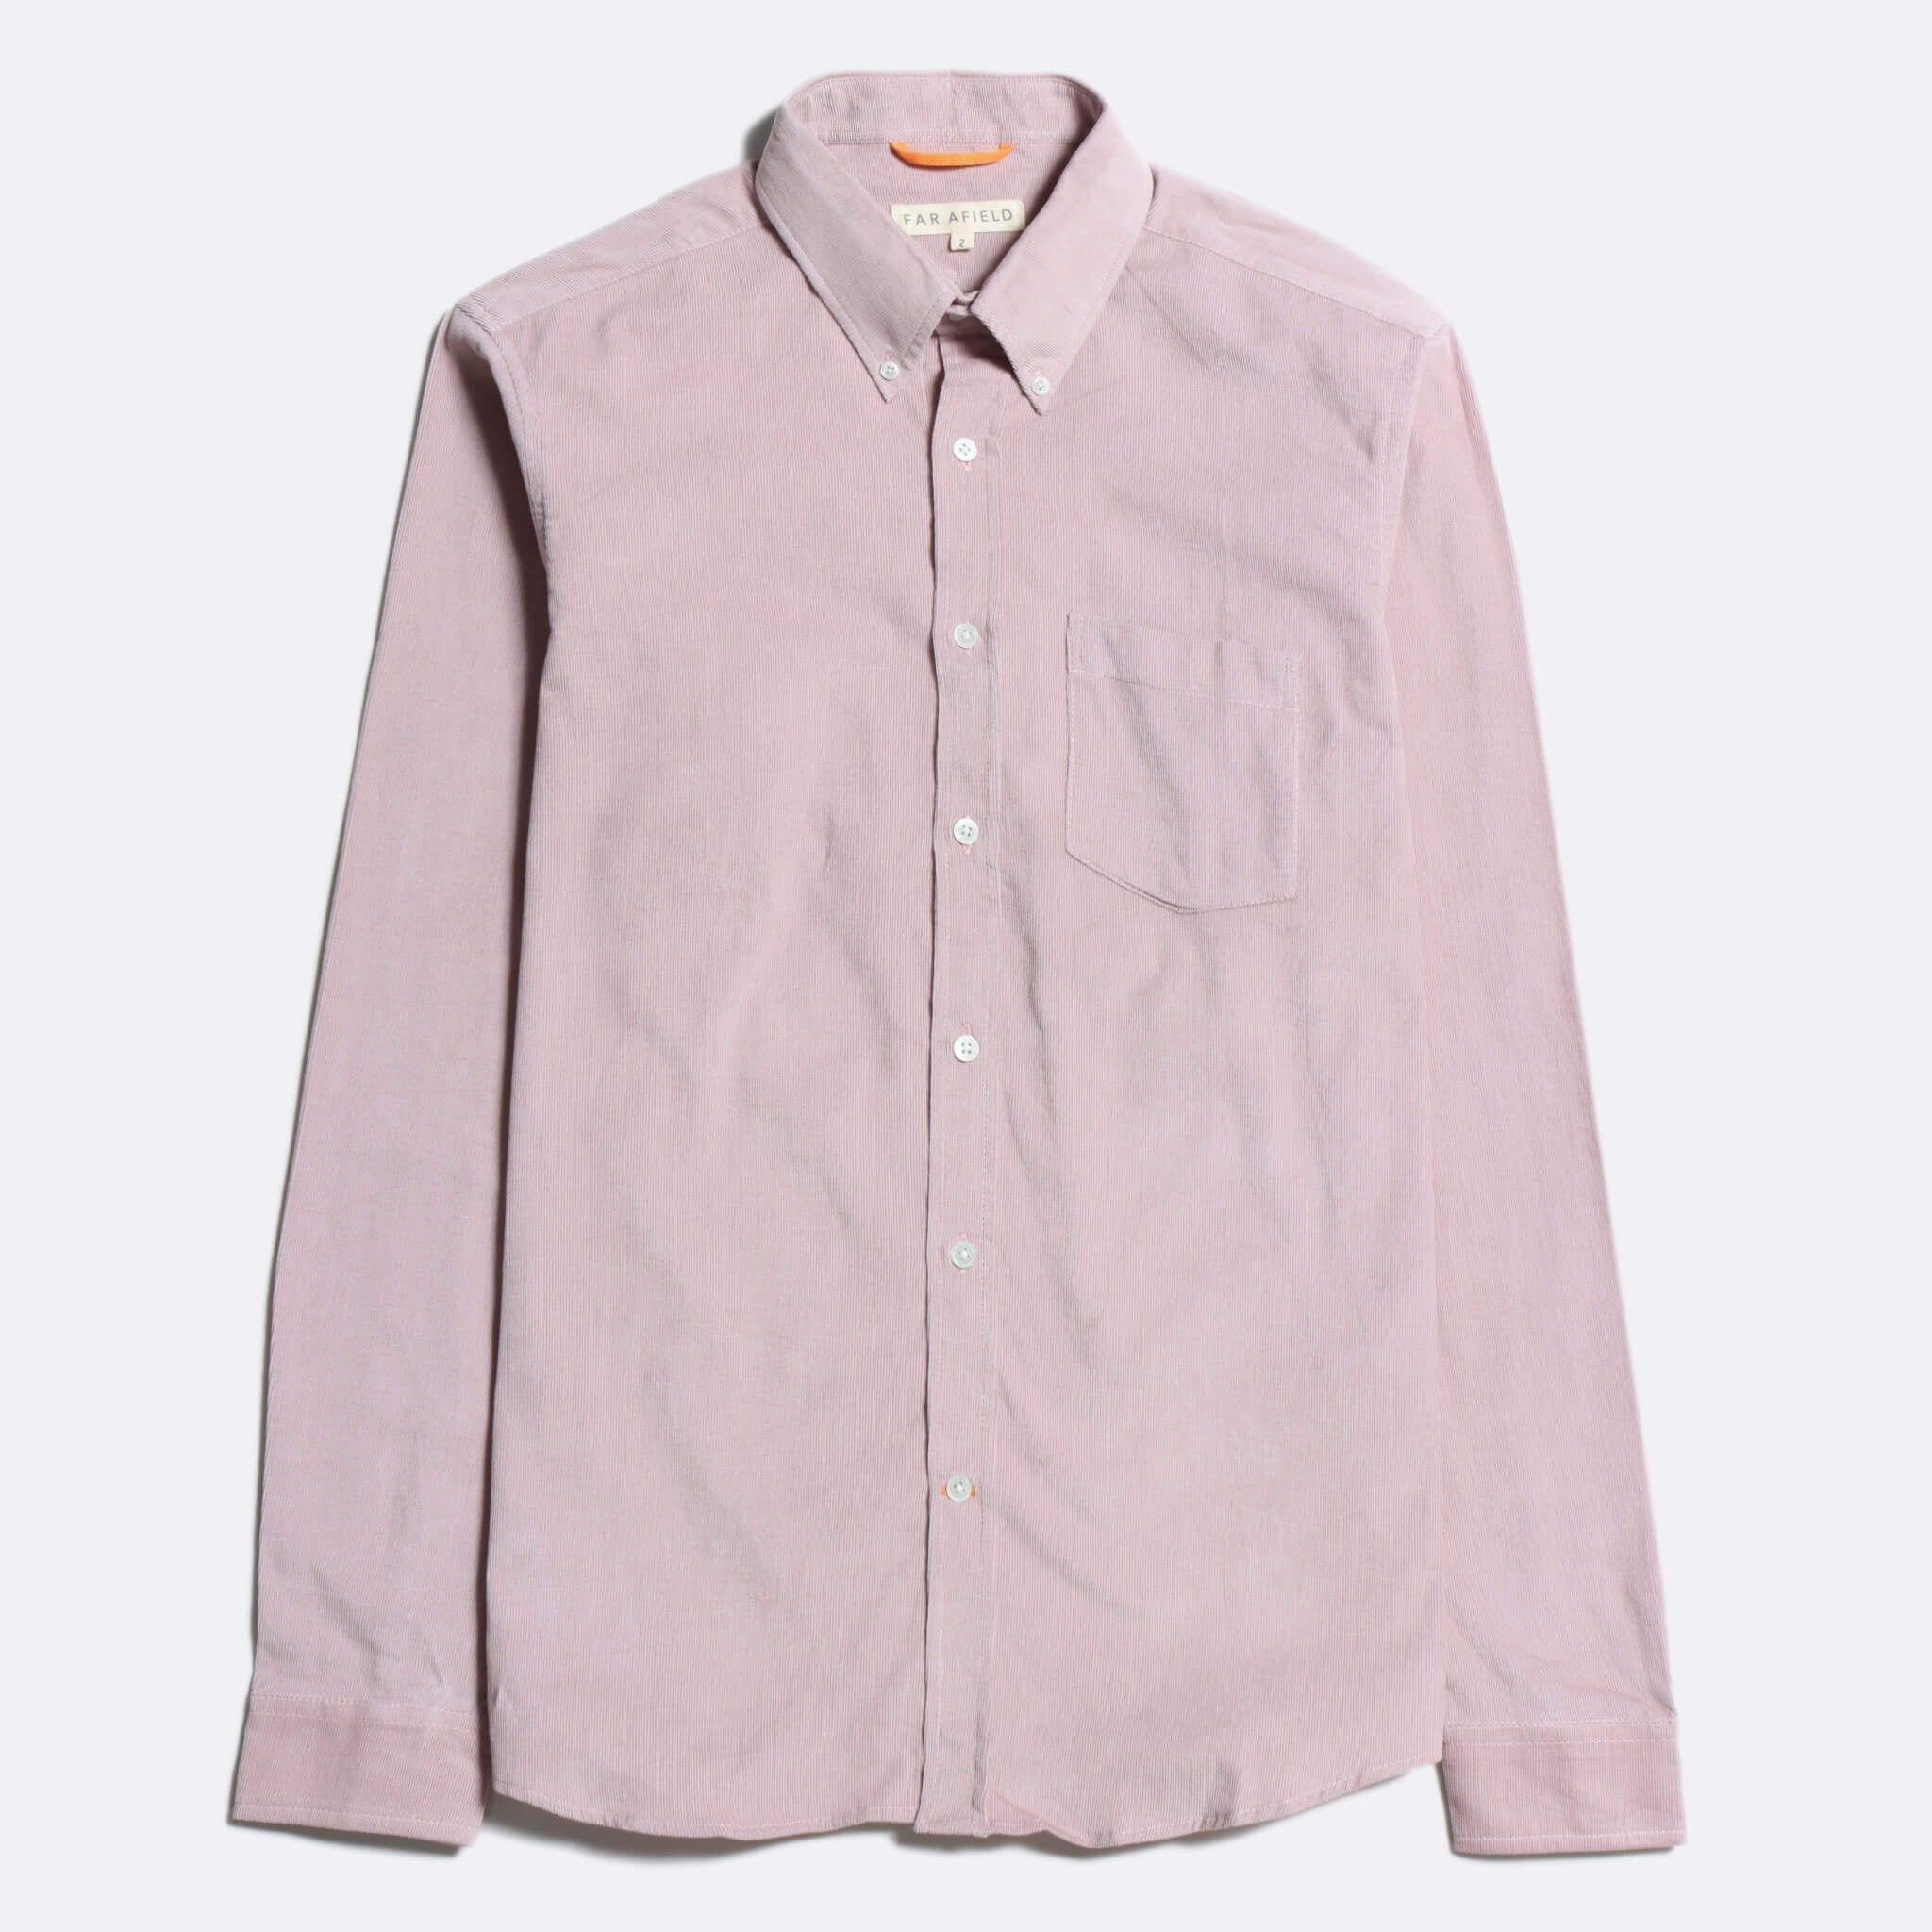 Far Afield Flap Pocket Pop Over Long Sleeve Shirt a Ecru Organic Cotton Corduroy Fabric Classic Menswear Smart Casual 8